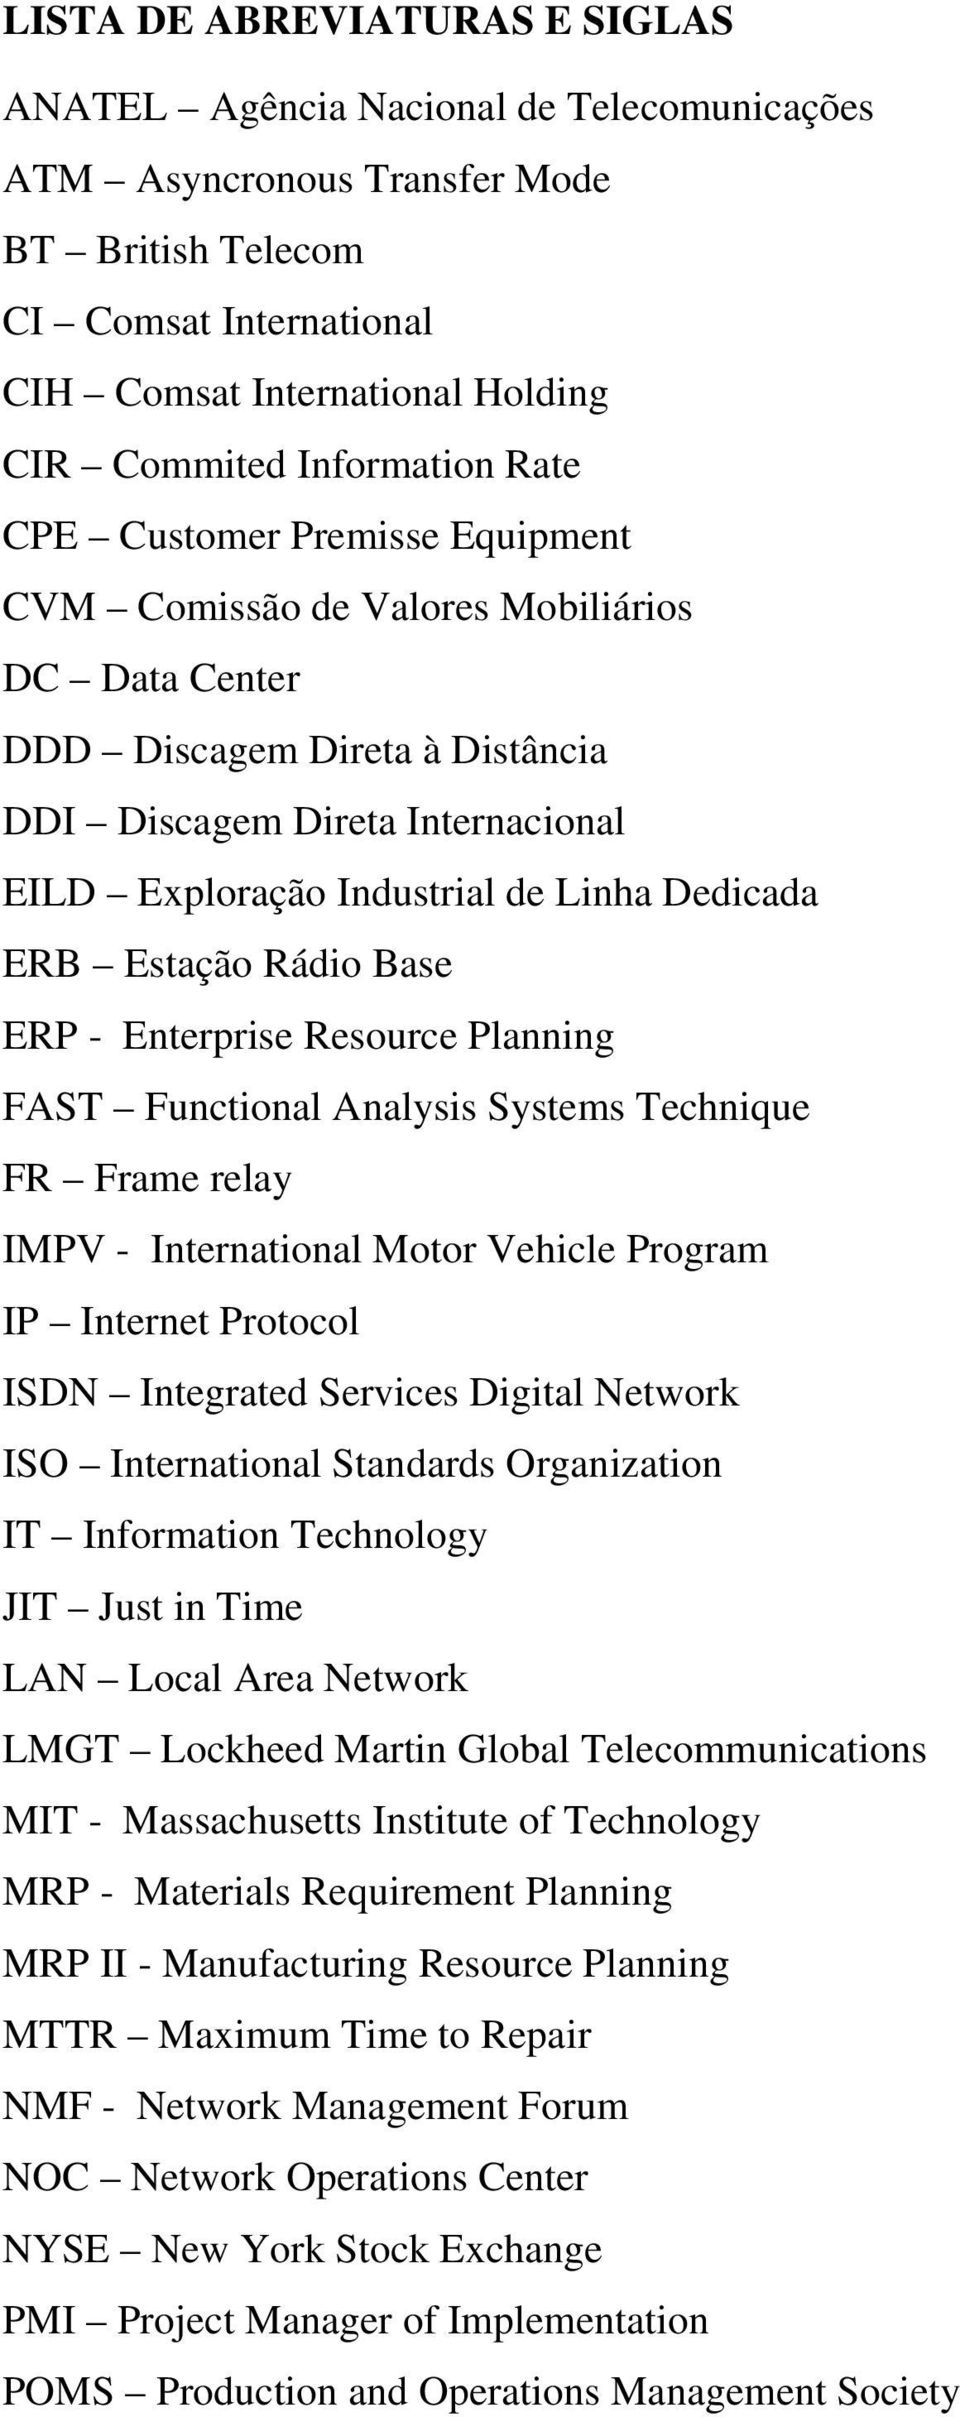 Linha Dedicada ERB Estação Rádio Base ERP - Enterprise Resource Planning FAST Functional Analysis Systems Technique FR Frame relay IMPV - International Motor Vehicle Program IP Internet Protocol ISDN